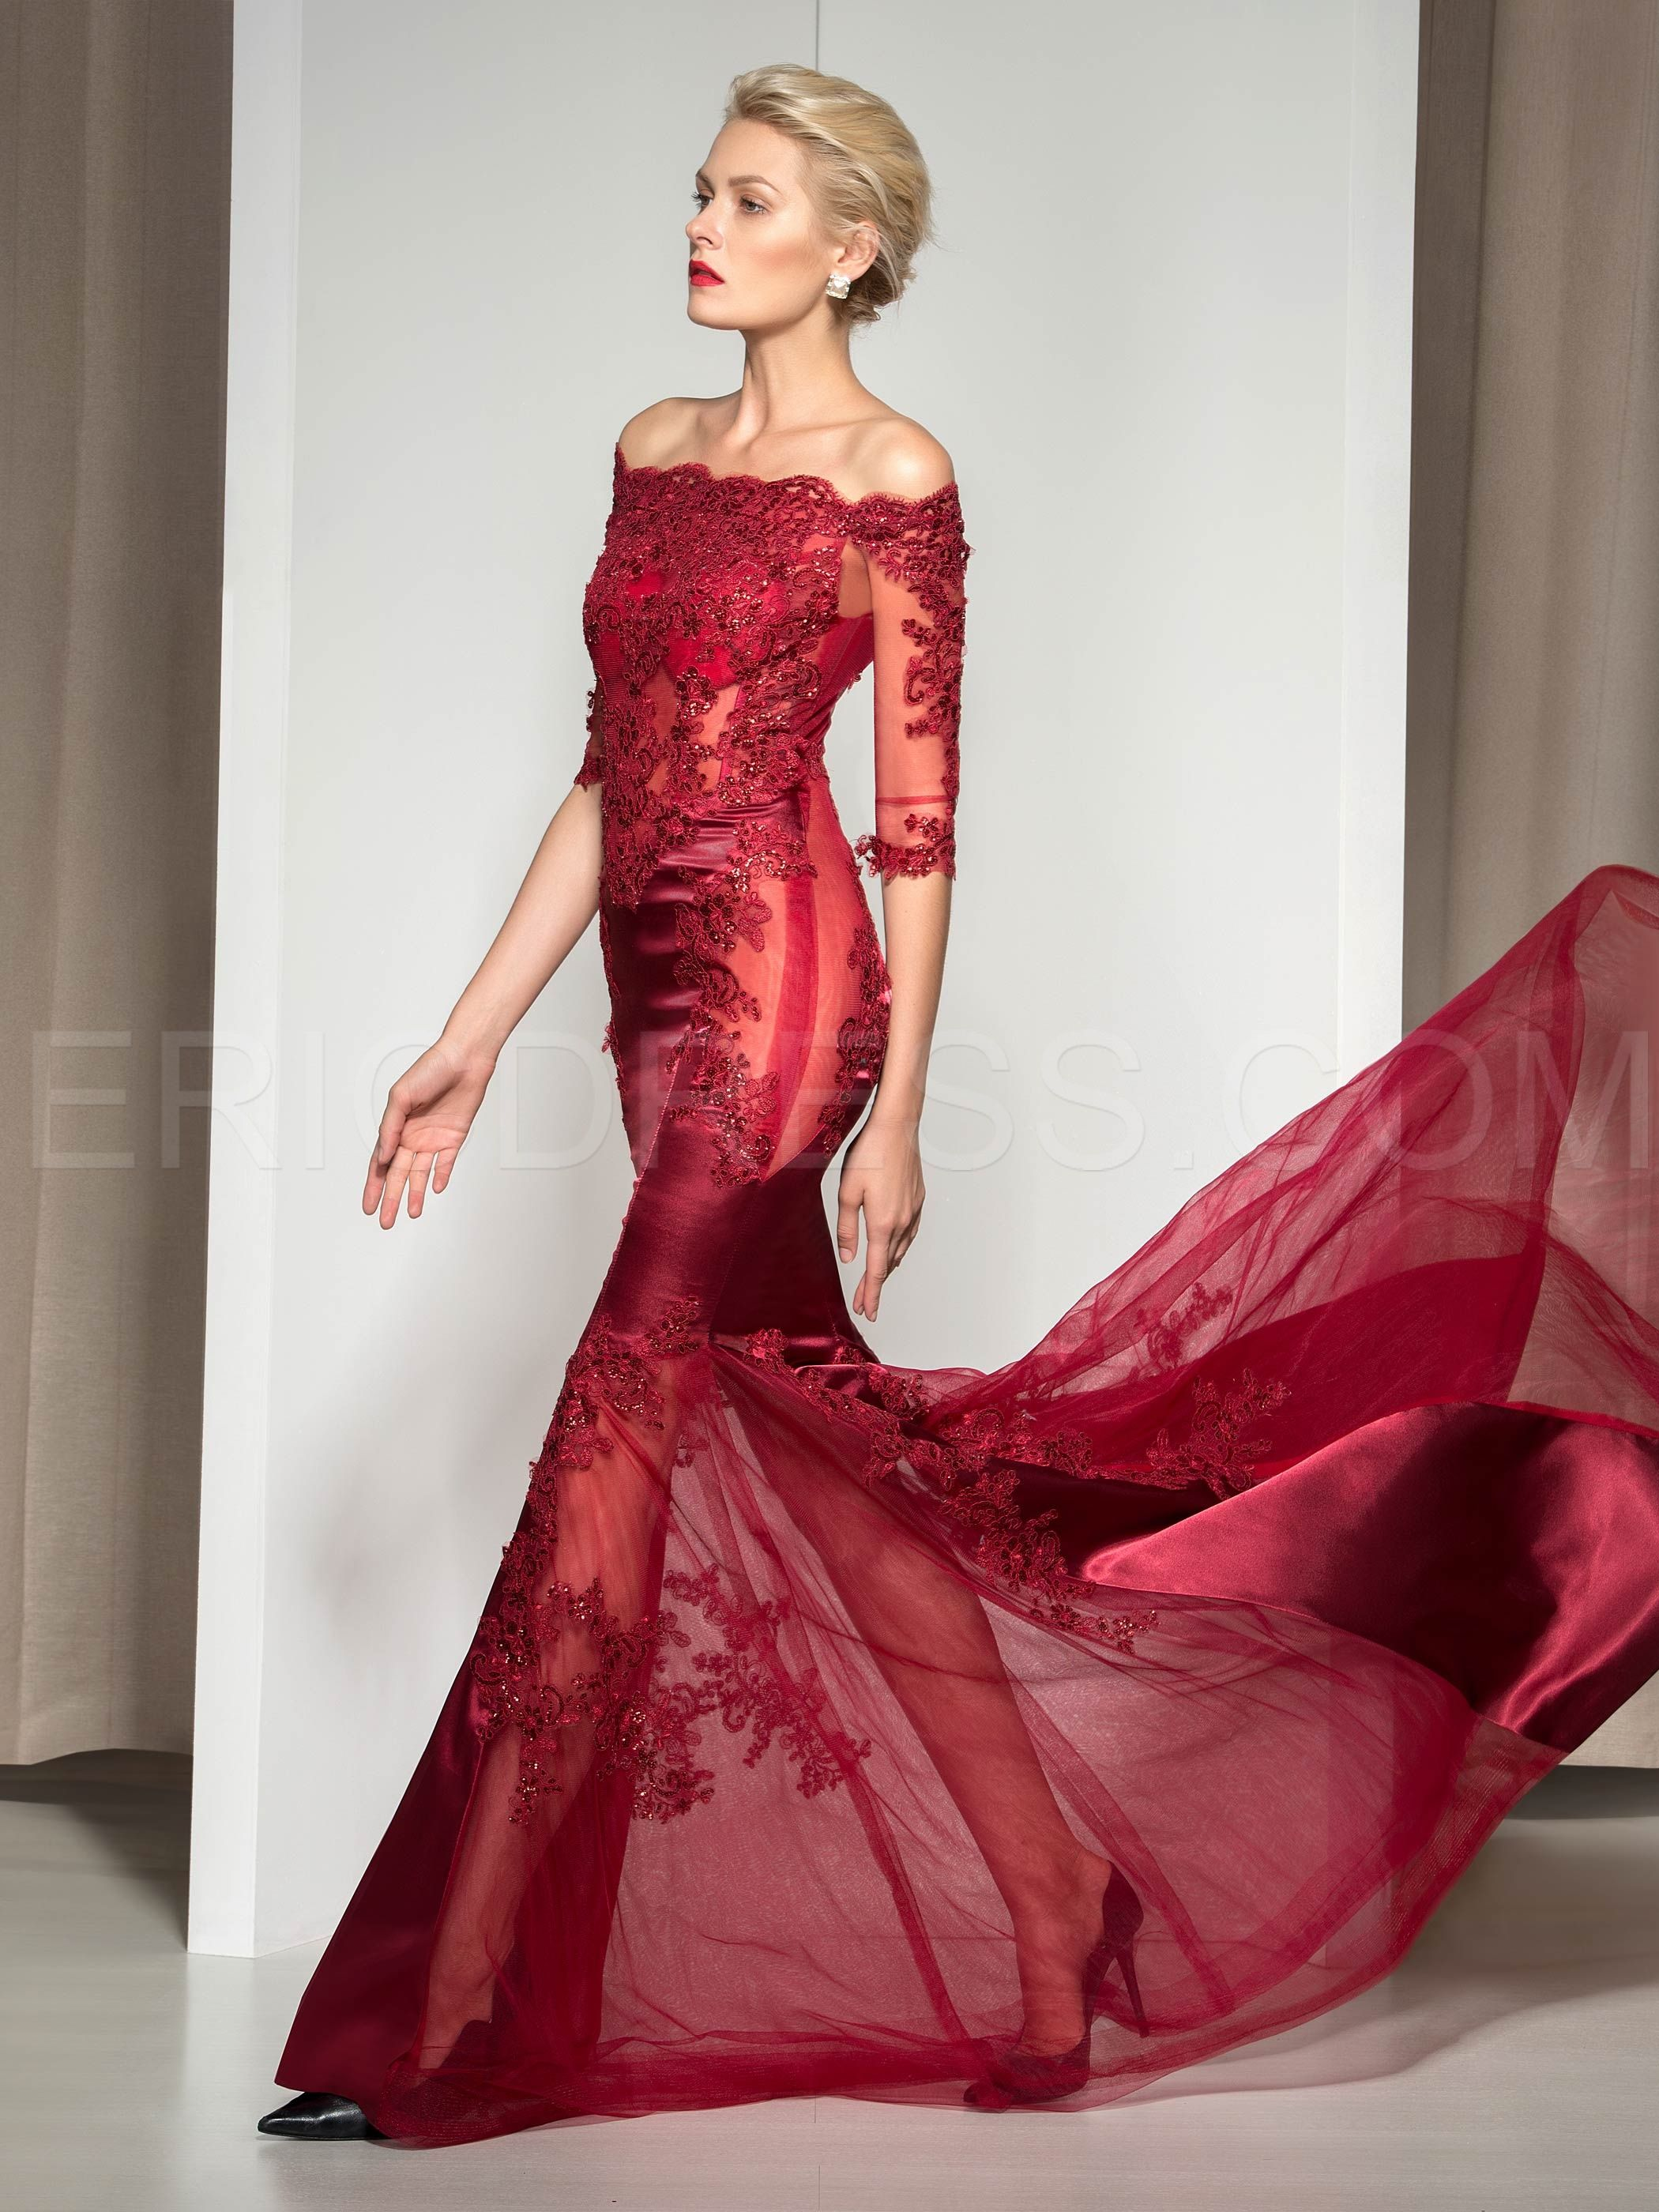 d73991b38920 ericdress.com offers high quality Ericdress Off-The-Shoulder Appliques  Sequins Mermaid Evening Dress Vintage Evening Dresses unit price of $  131.99.